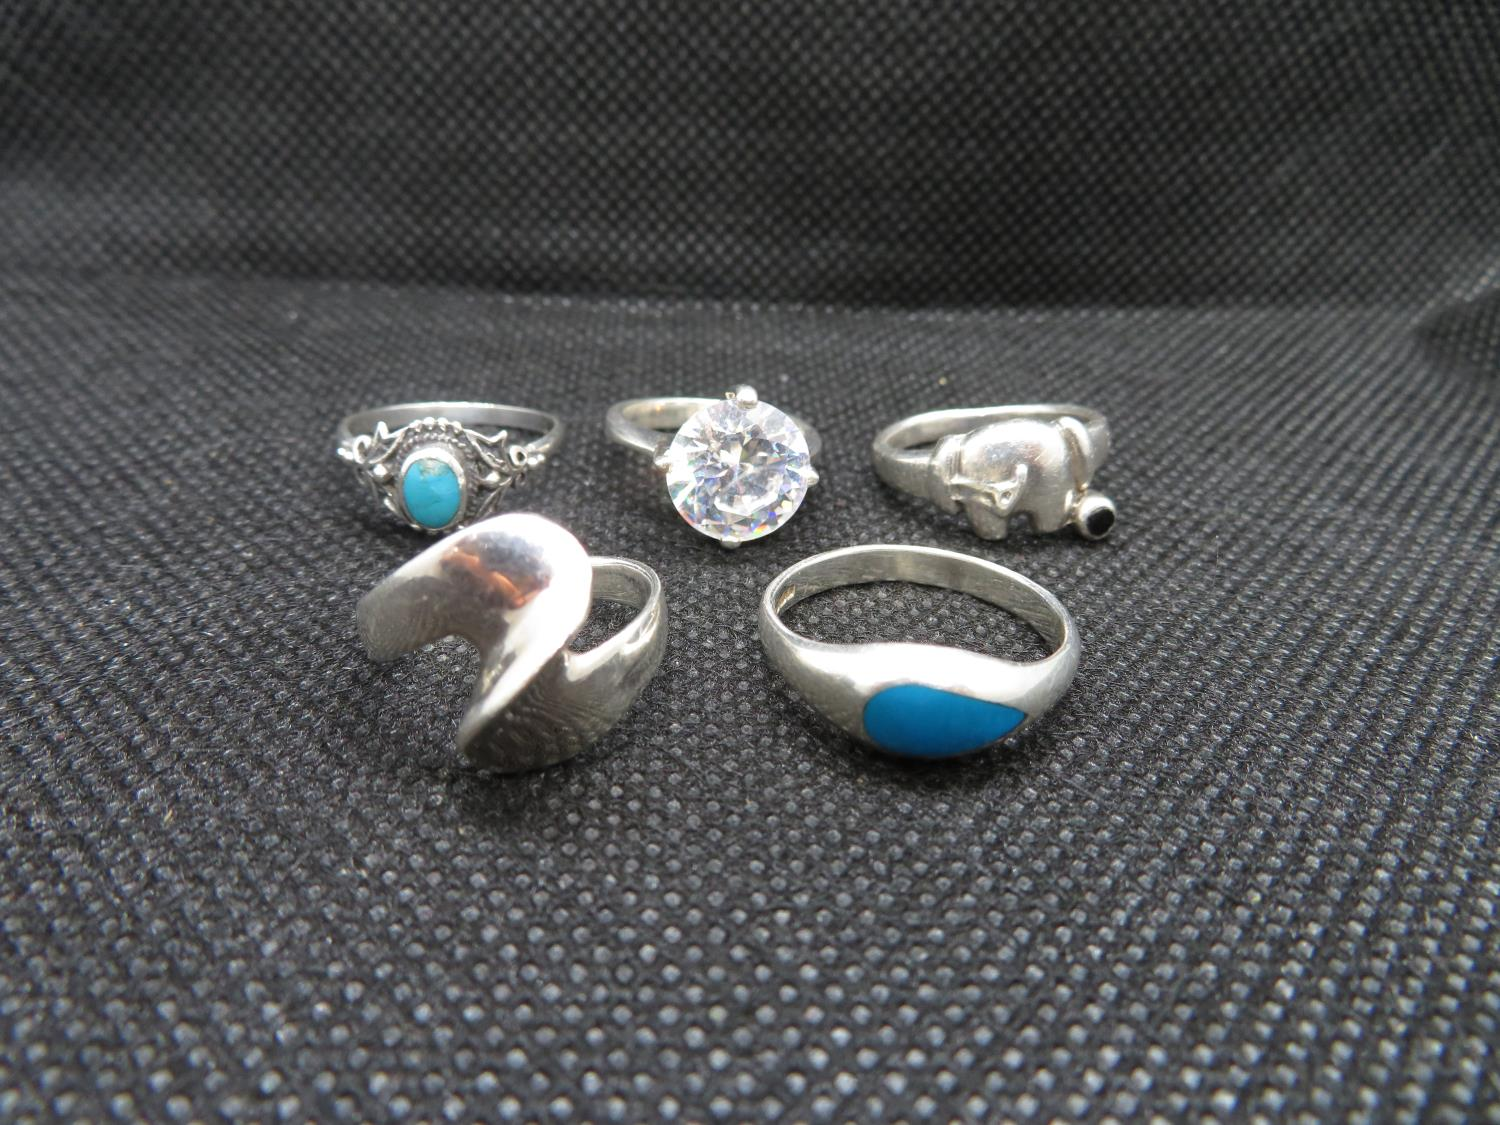 Job lot of 5x silver rings - small sizes 14g